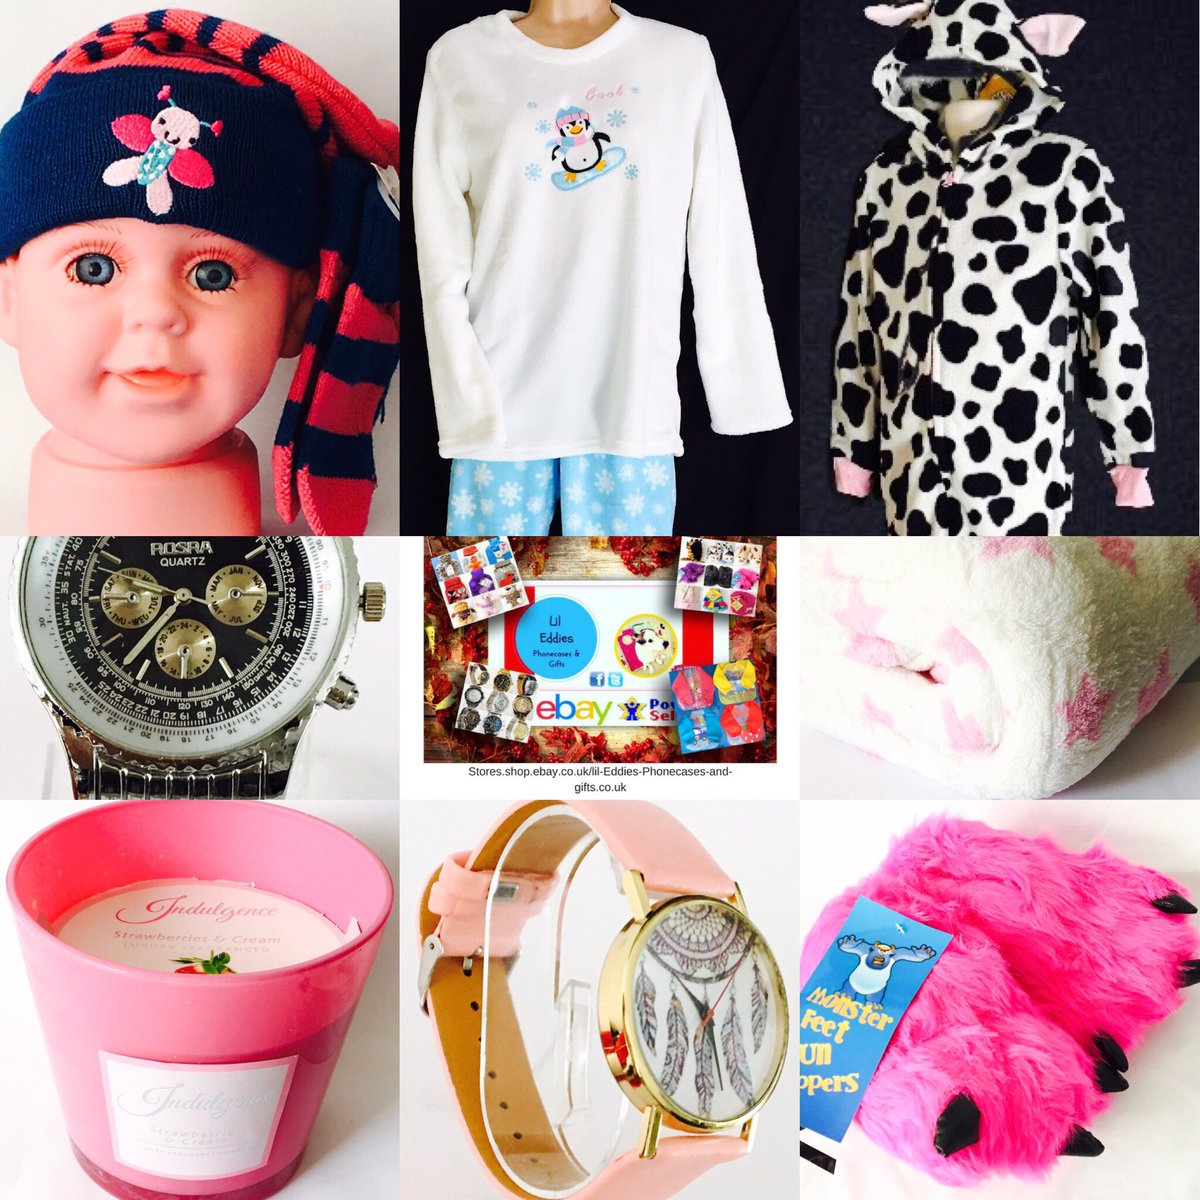 Visit @LilEddies #onlineshop for gifts  from #99p    http:// Stores.shop.ebay.co.uk/lil-Eddies-Pho necases-and-gifts &nbsp; …   RT FOLLOW @LilEddies 4 a chance 2 WIN a PRIZE  #gifts #shop <br>http://pic.twitter.com/KIjd7gScce